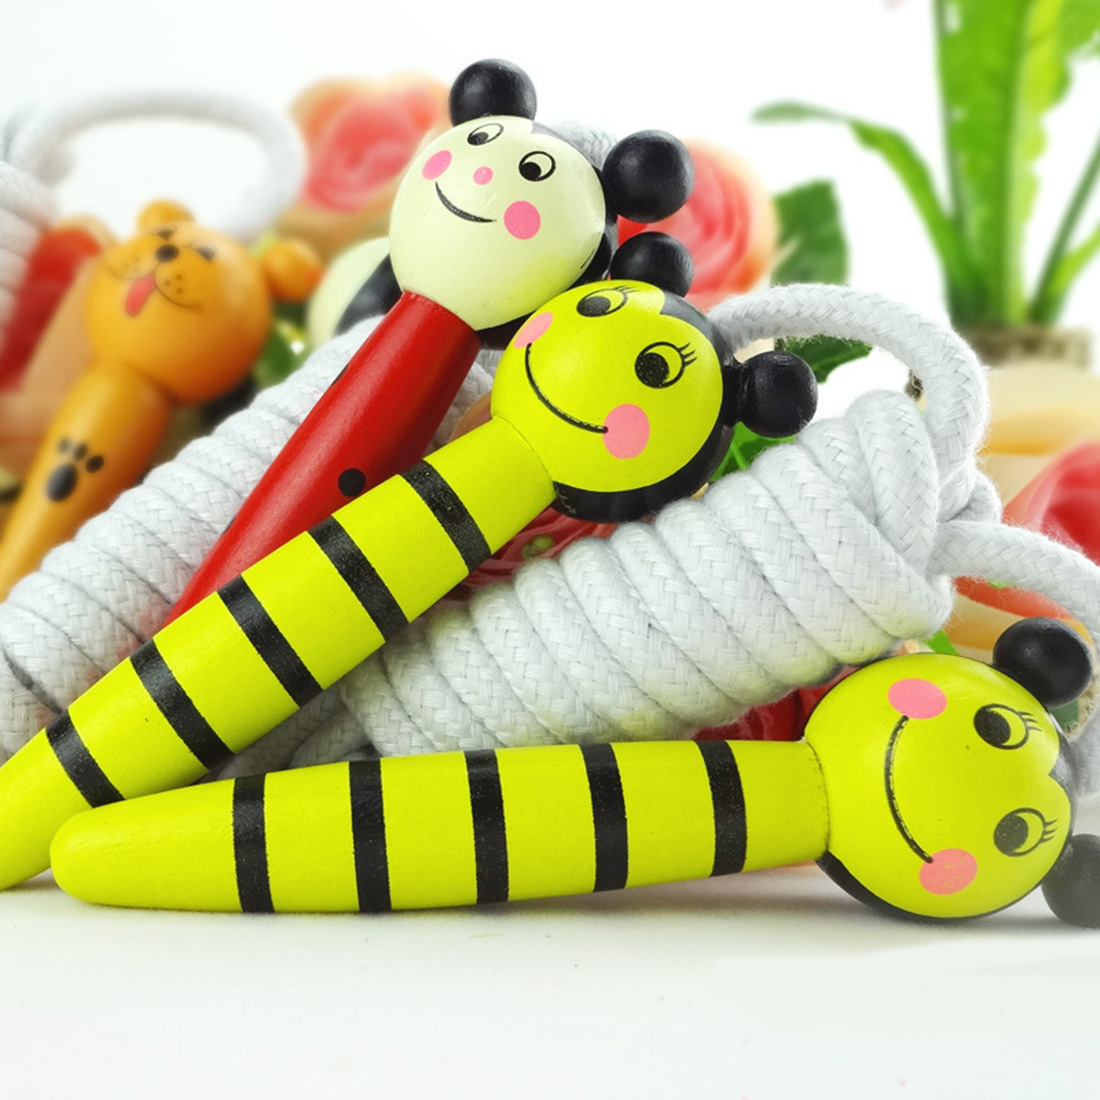 2016 NEW Cartoon Animals Design Wooden Handle Jump Rope Skipping Rope for Kids Boys Girls Fitness Exercise Speed-Random Delivery(China (Mainland))